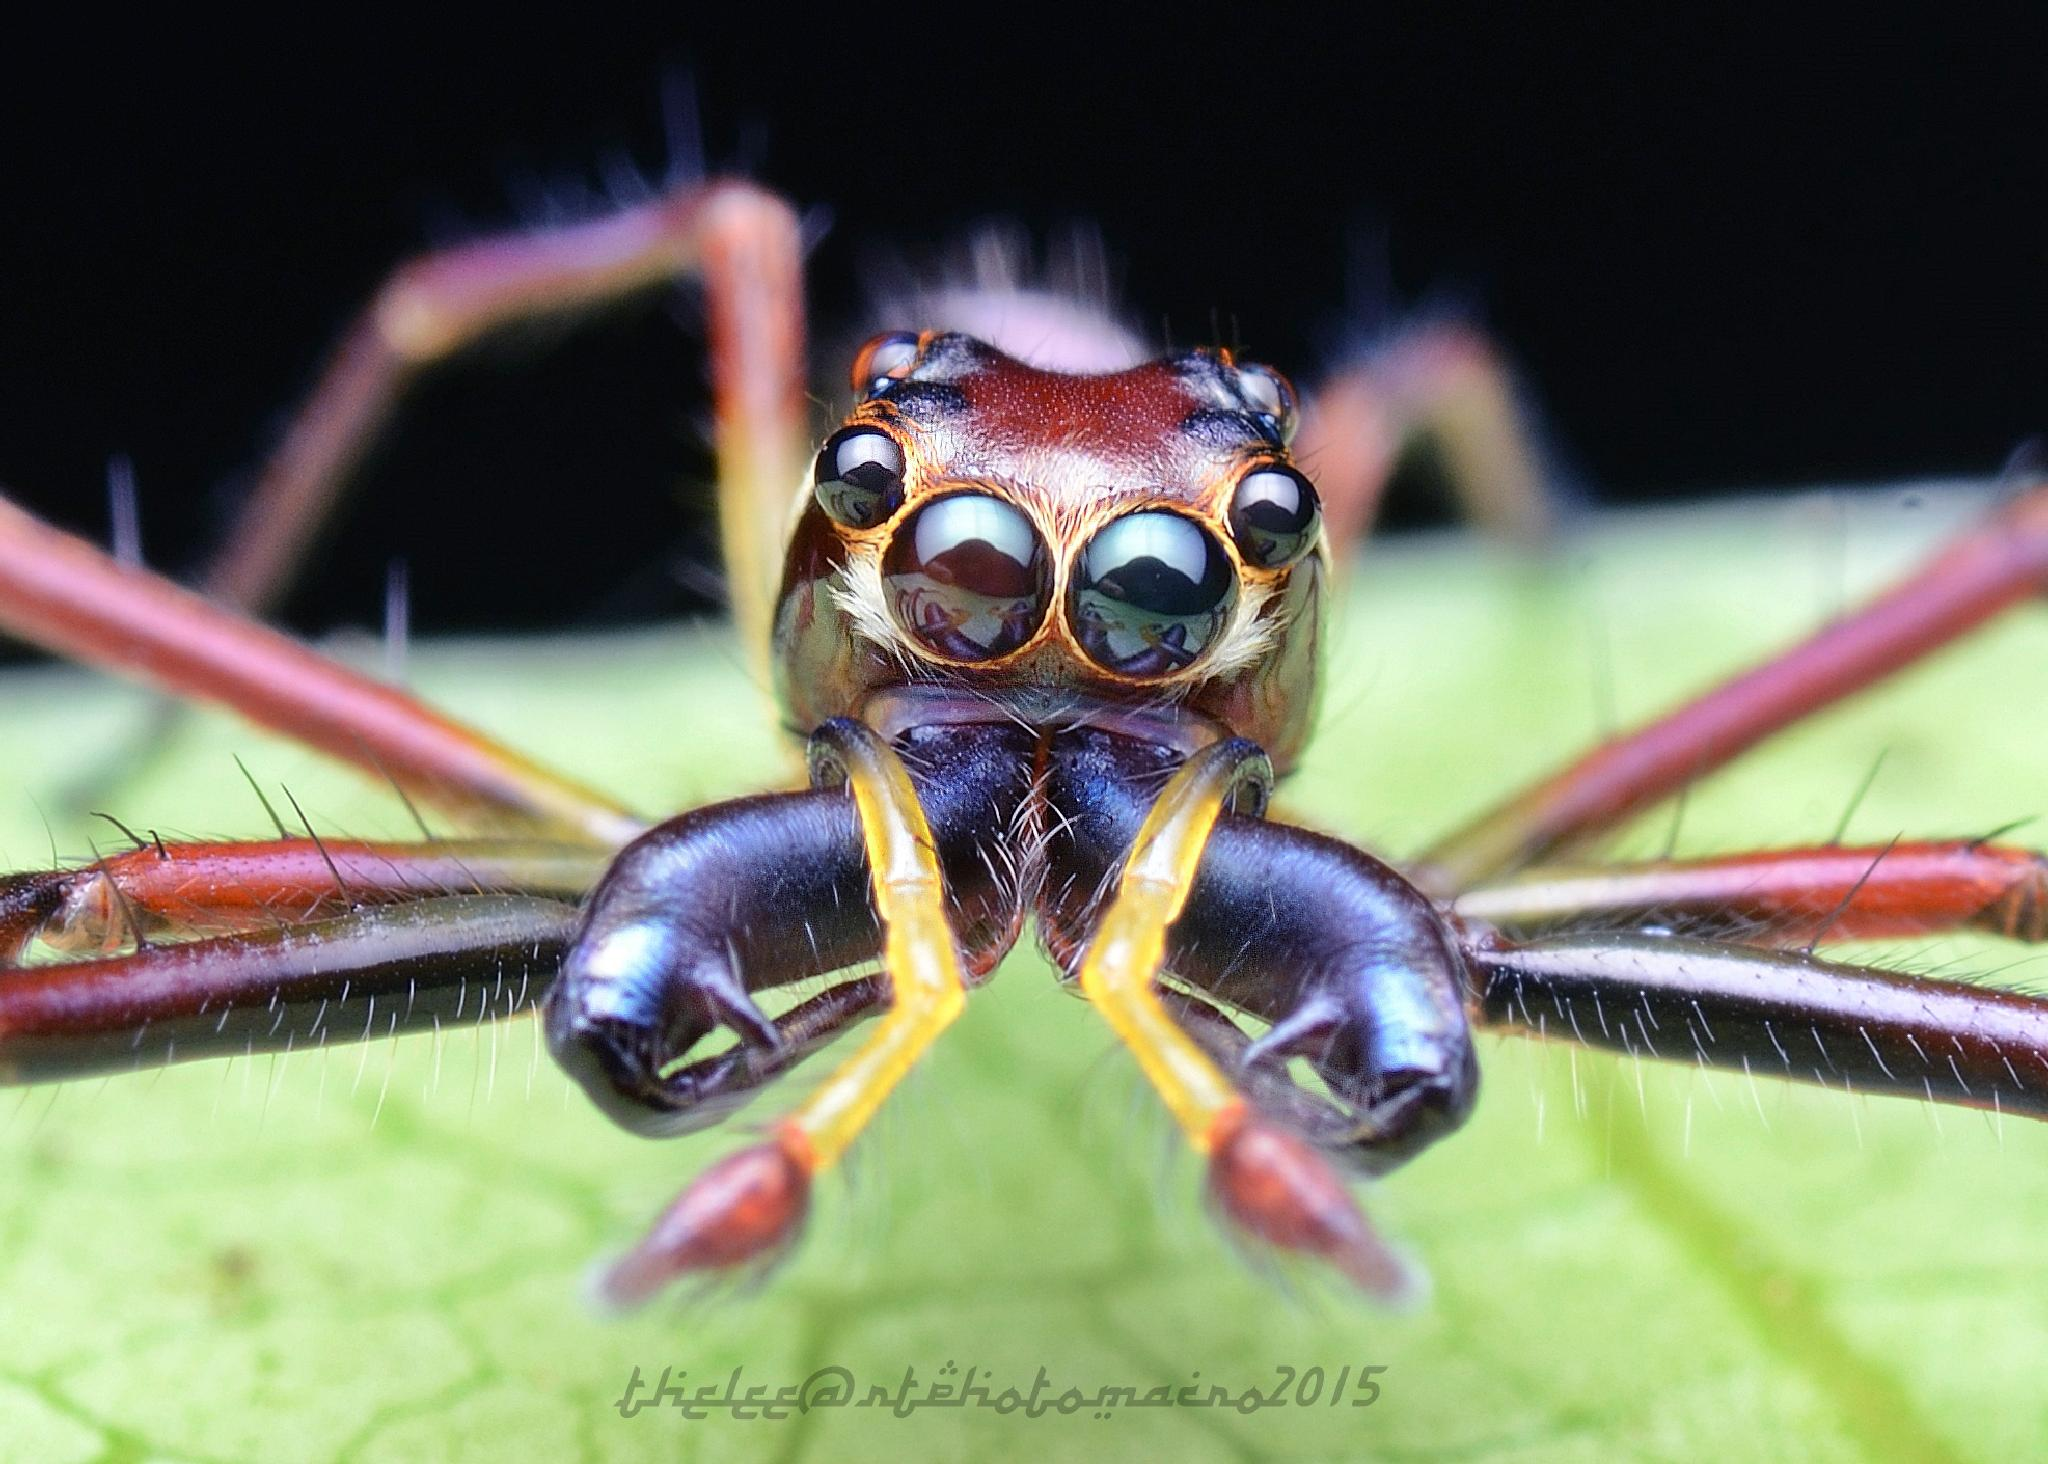 wide jawed viciria jumping spider by Mohd adli Bin Udin